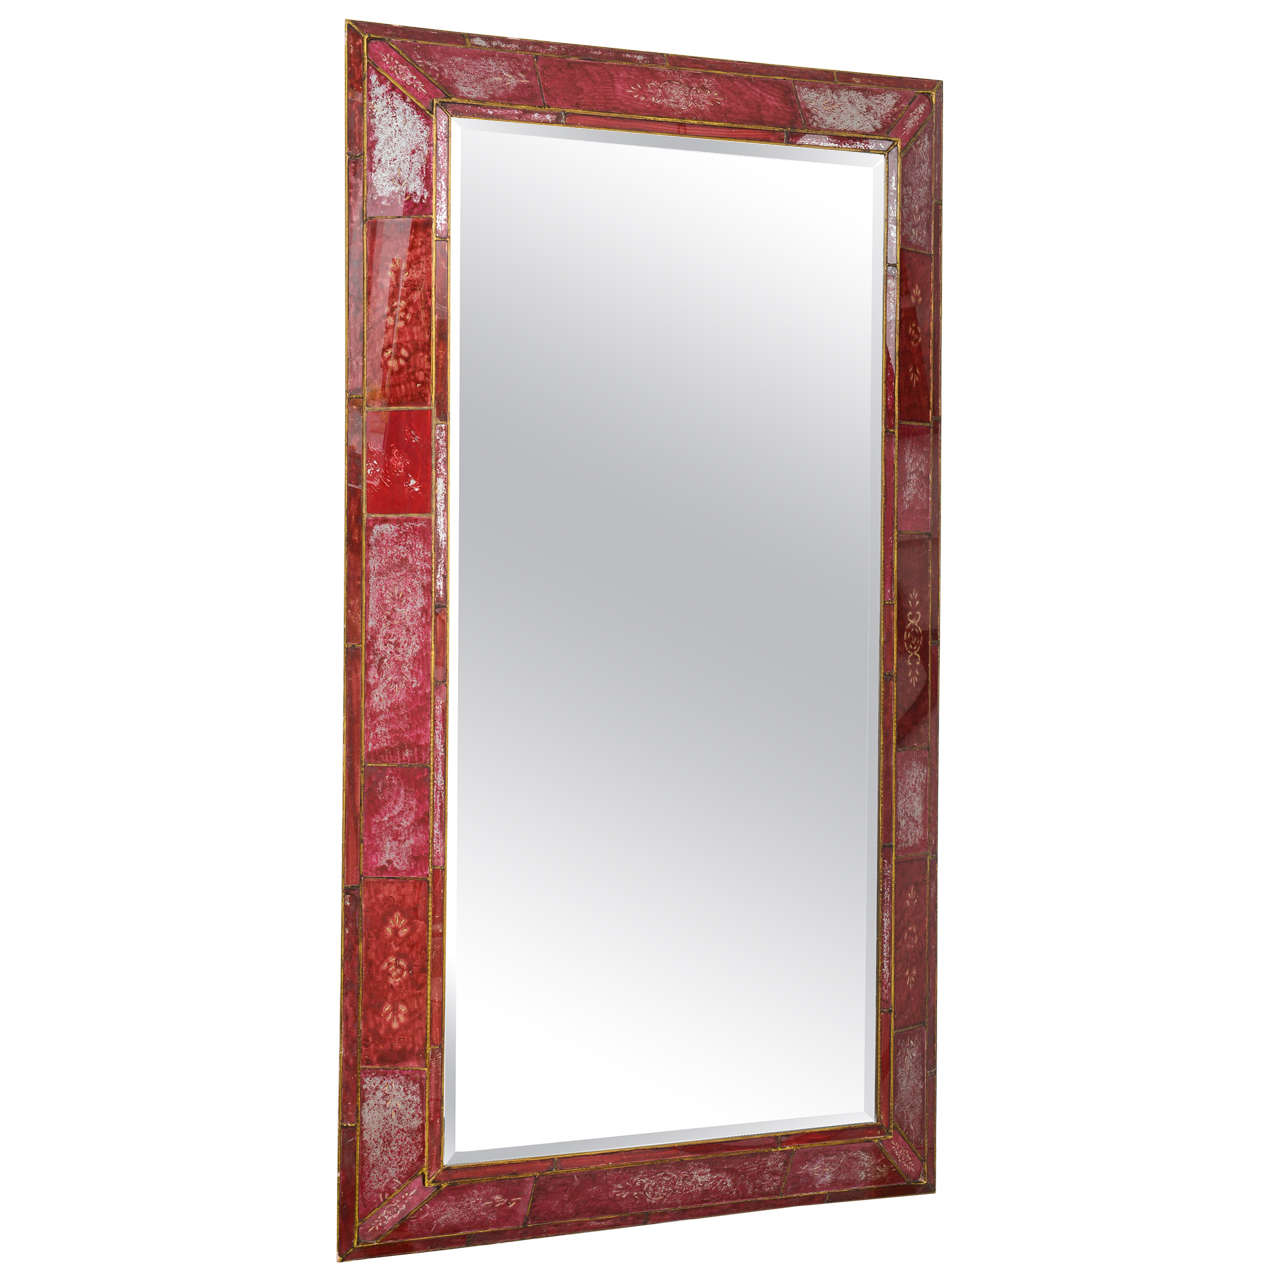 Large red reverse painted glass mirror at 1stdibs for Tall glass mirror